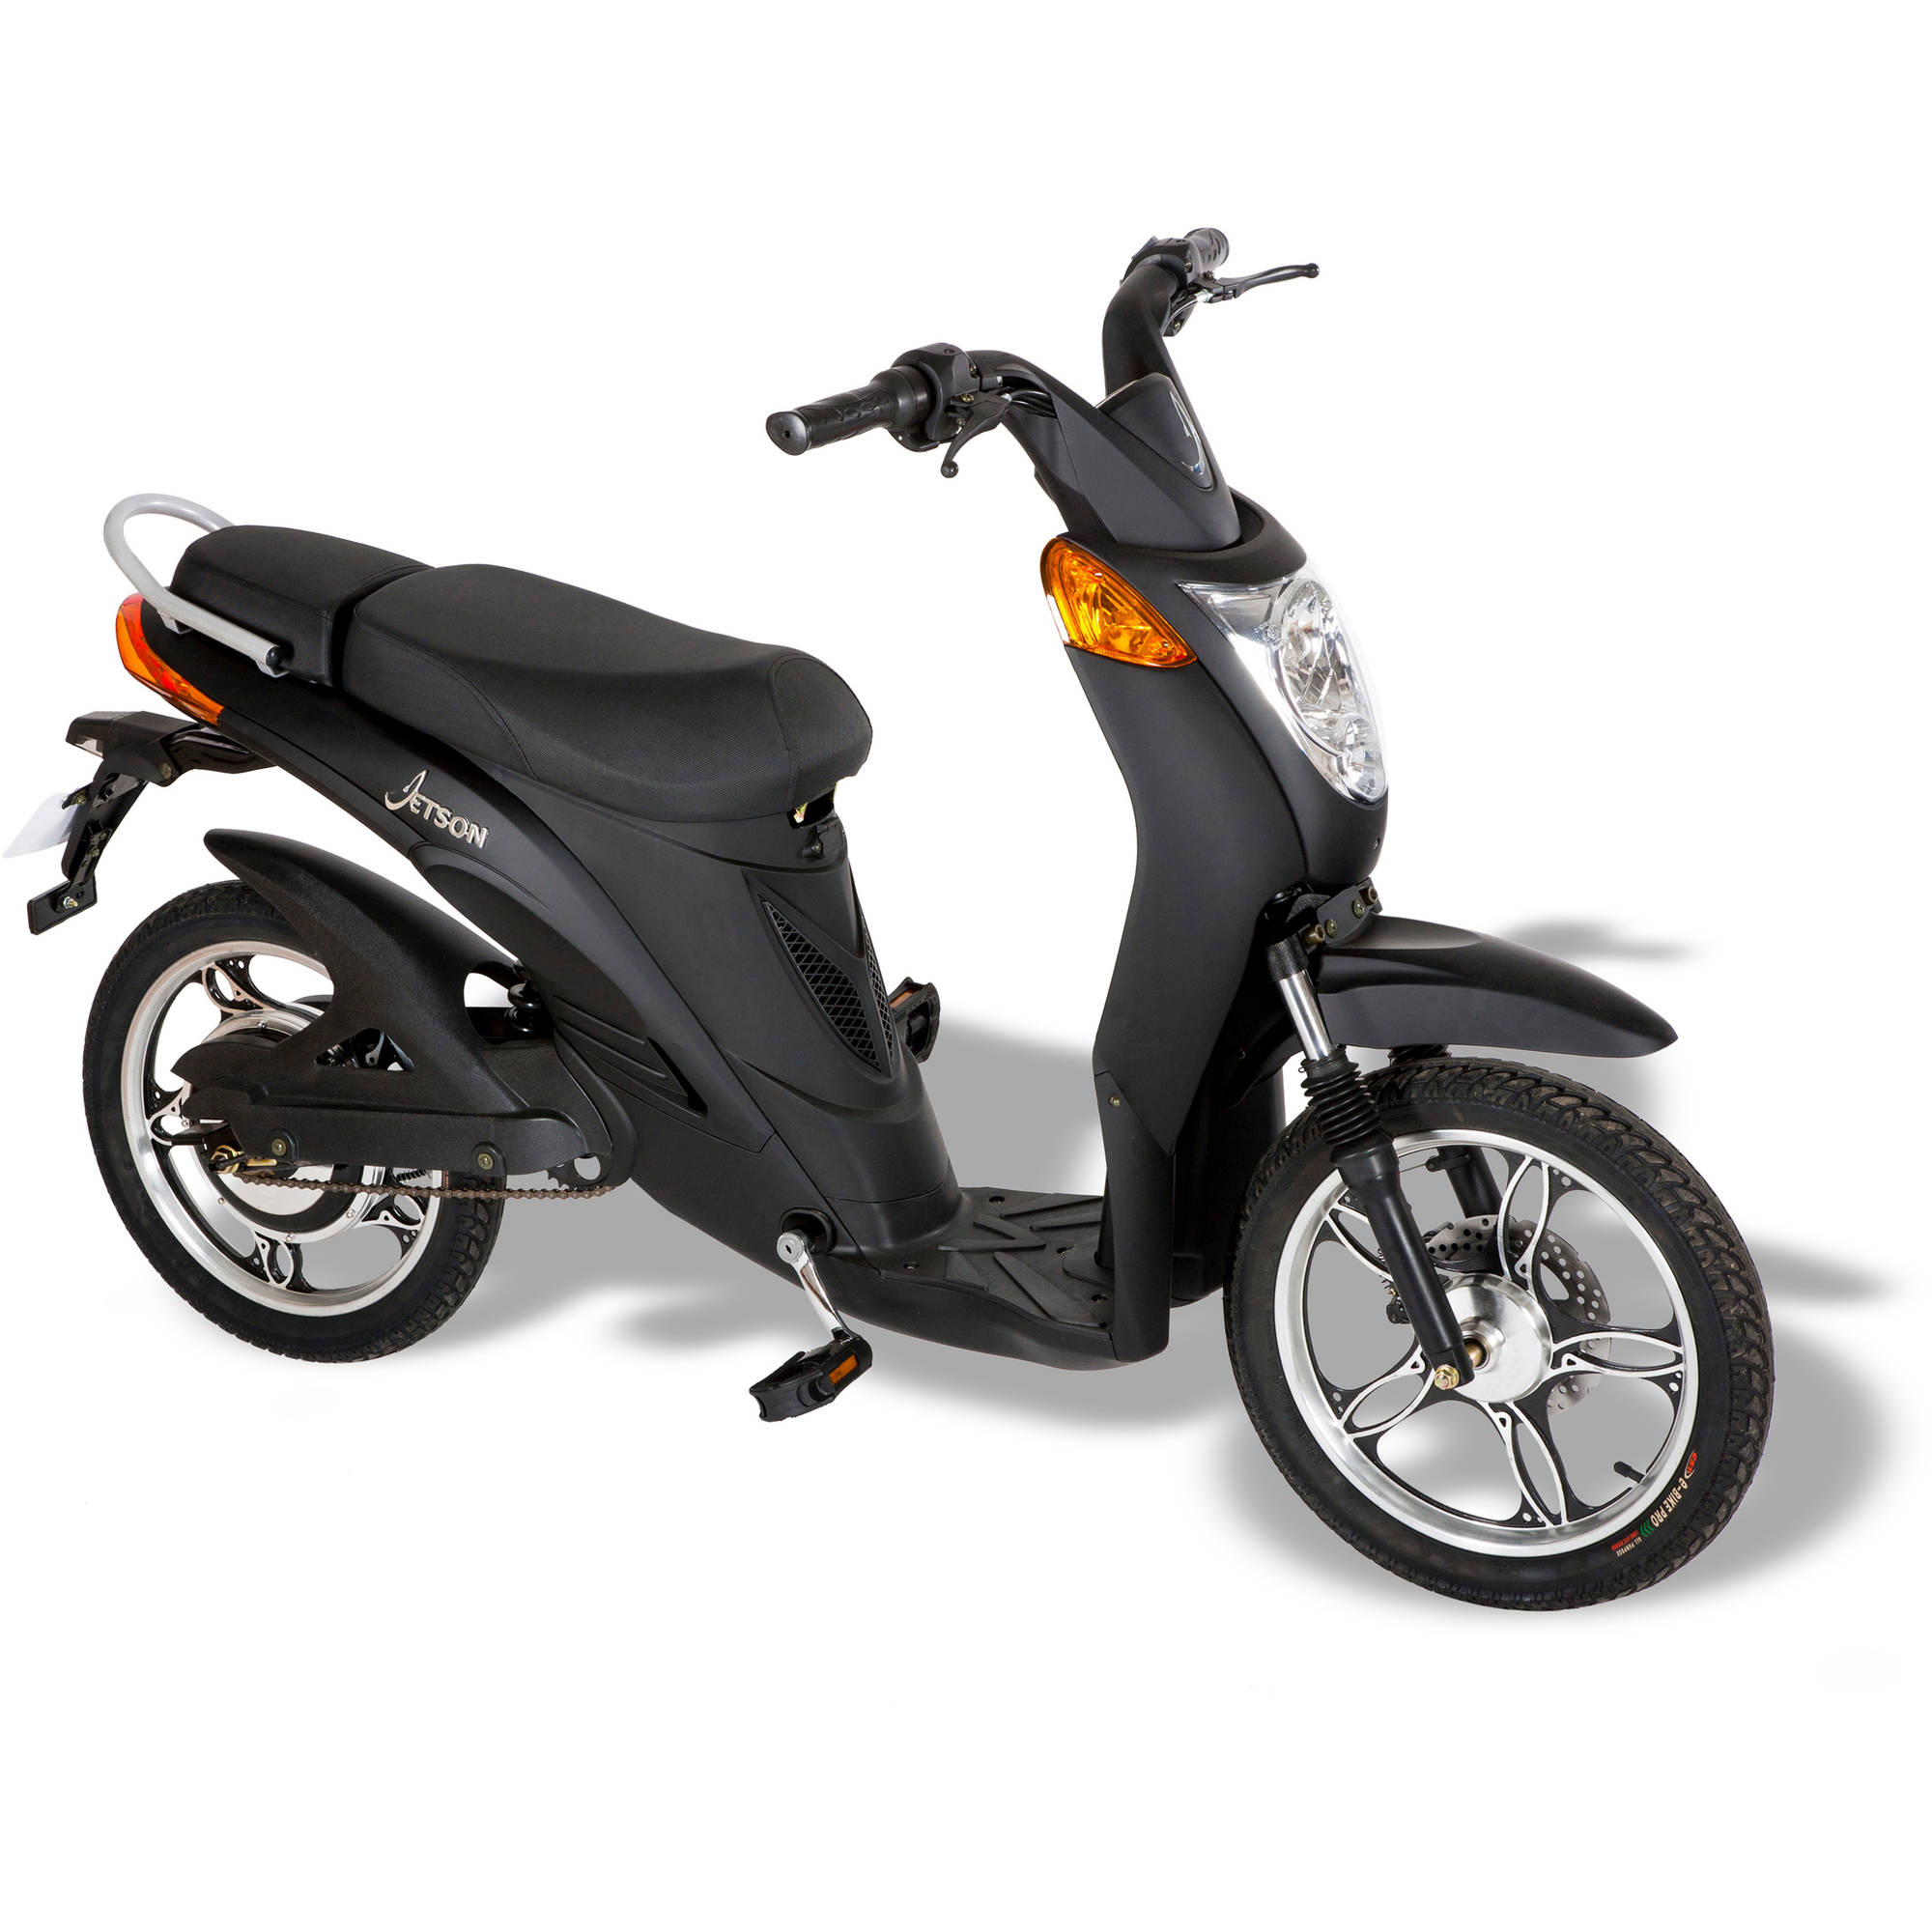 Jetson Electric Scooter Bike, Adult